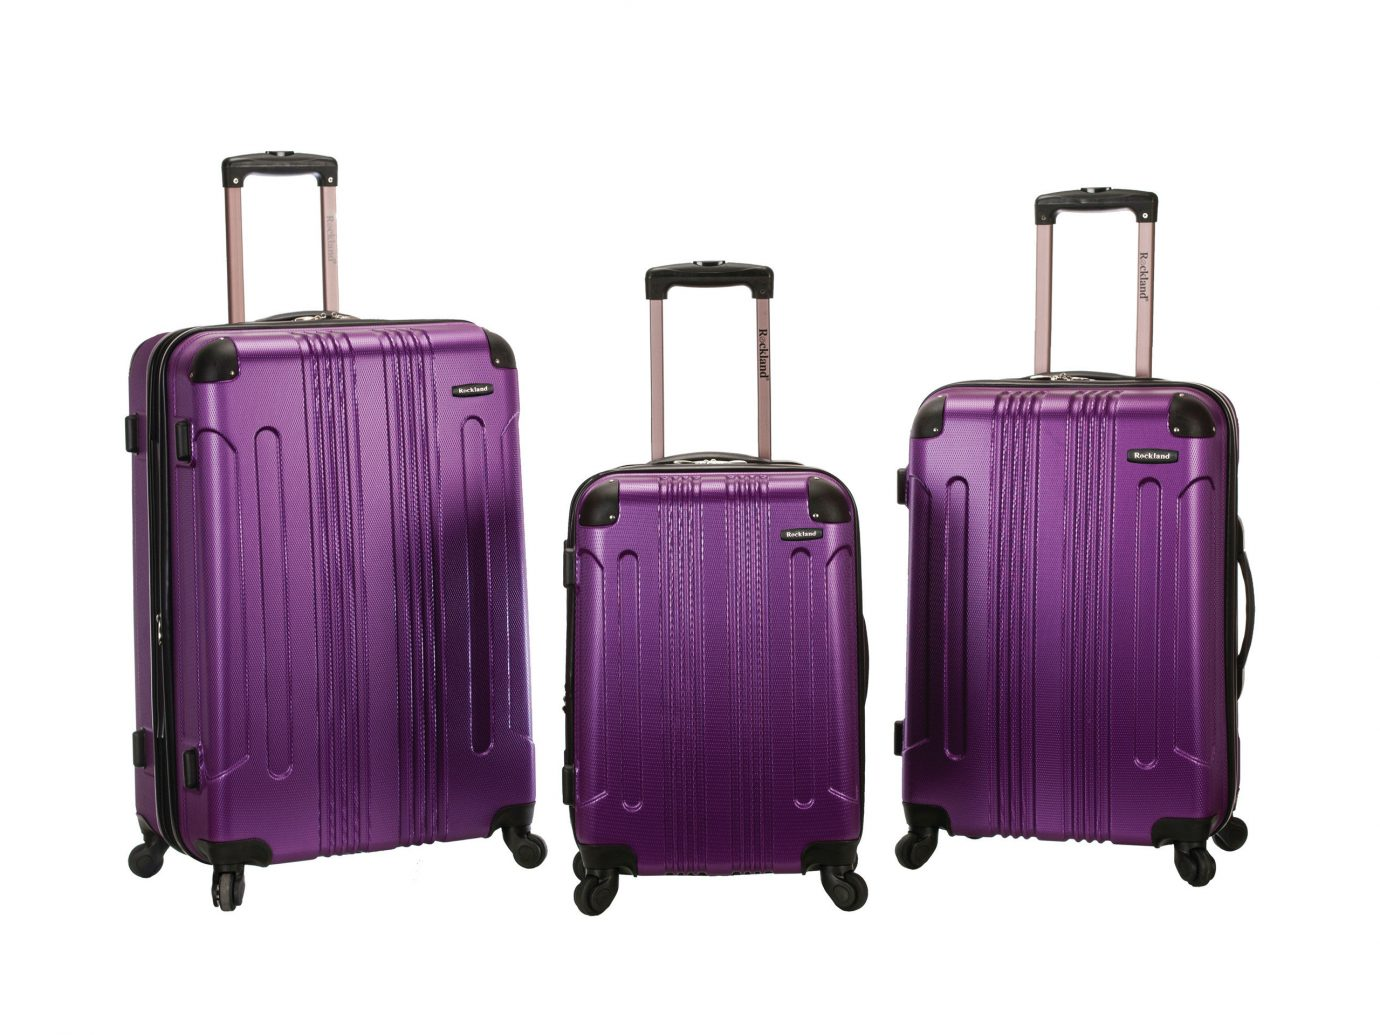 Packing Tips Style + Design Travel Shop luggage suitcase purple violet piece product bag hand luggage product design luggage & bags magenta baggage brand colored different